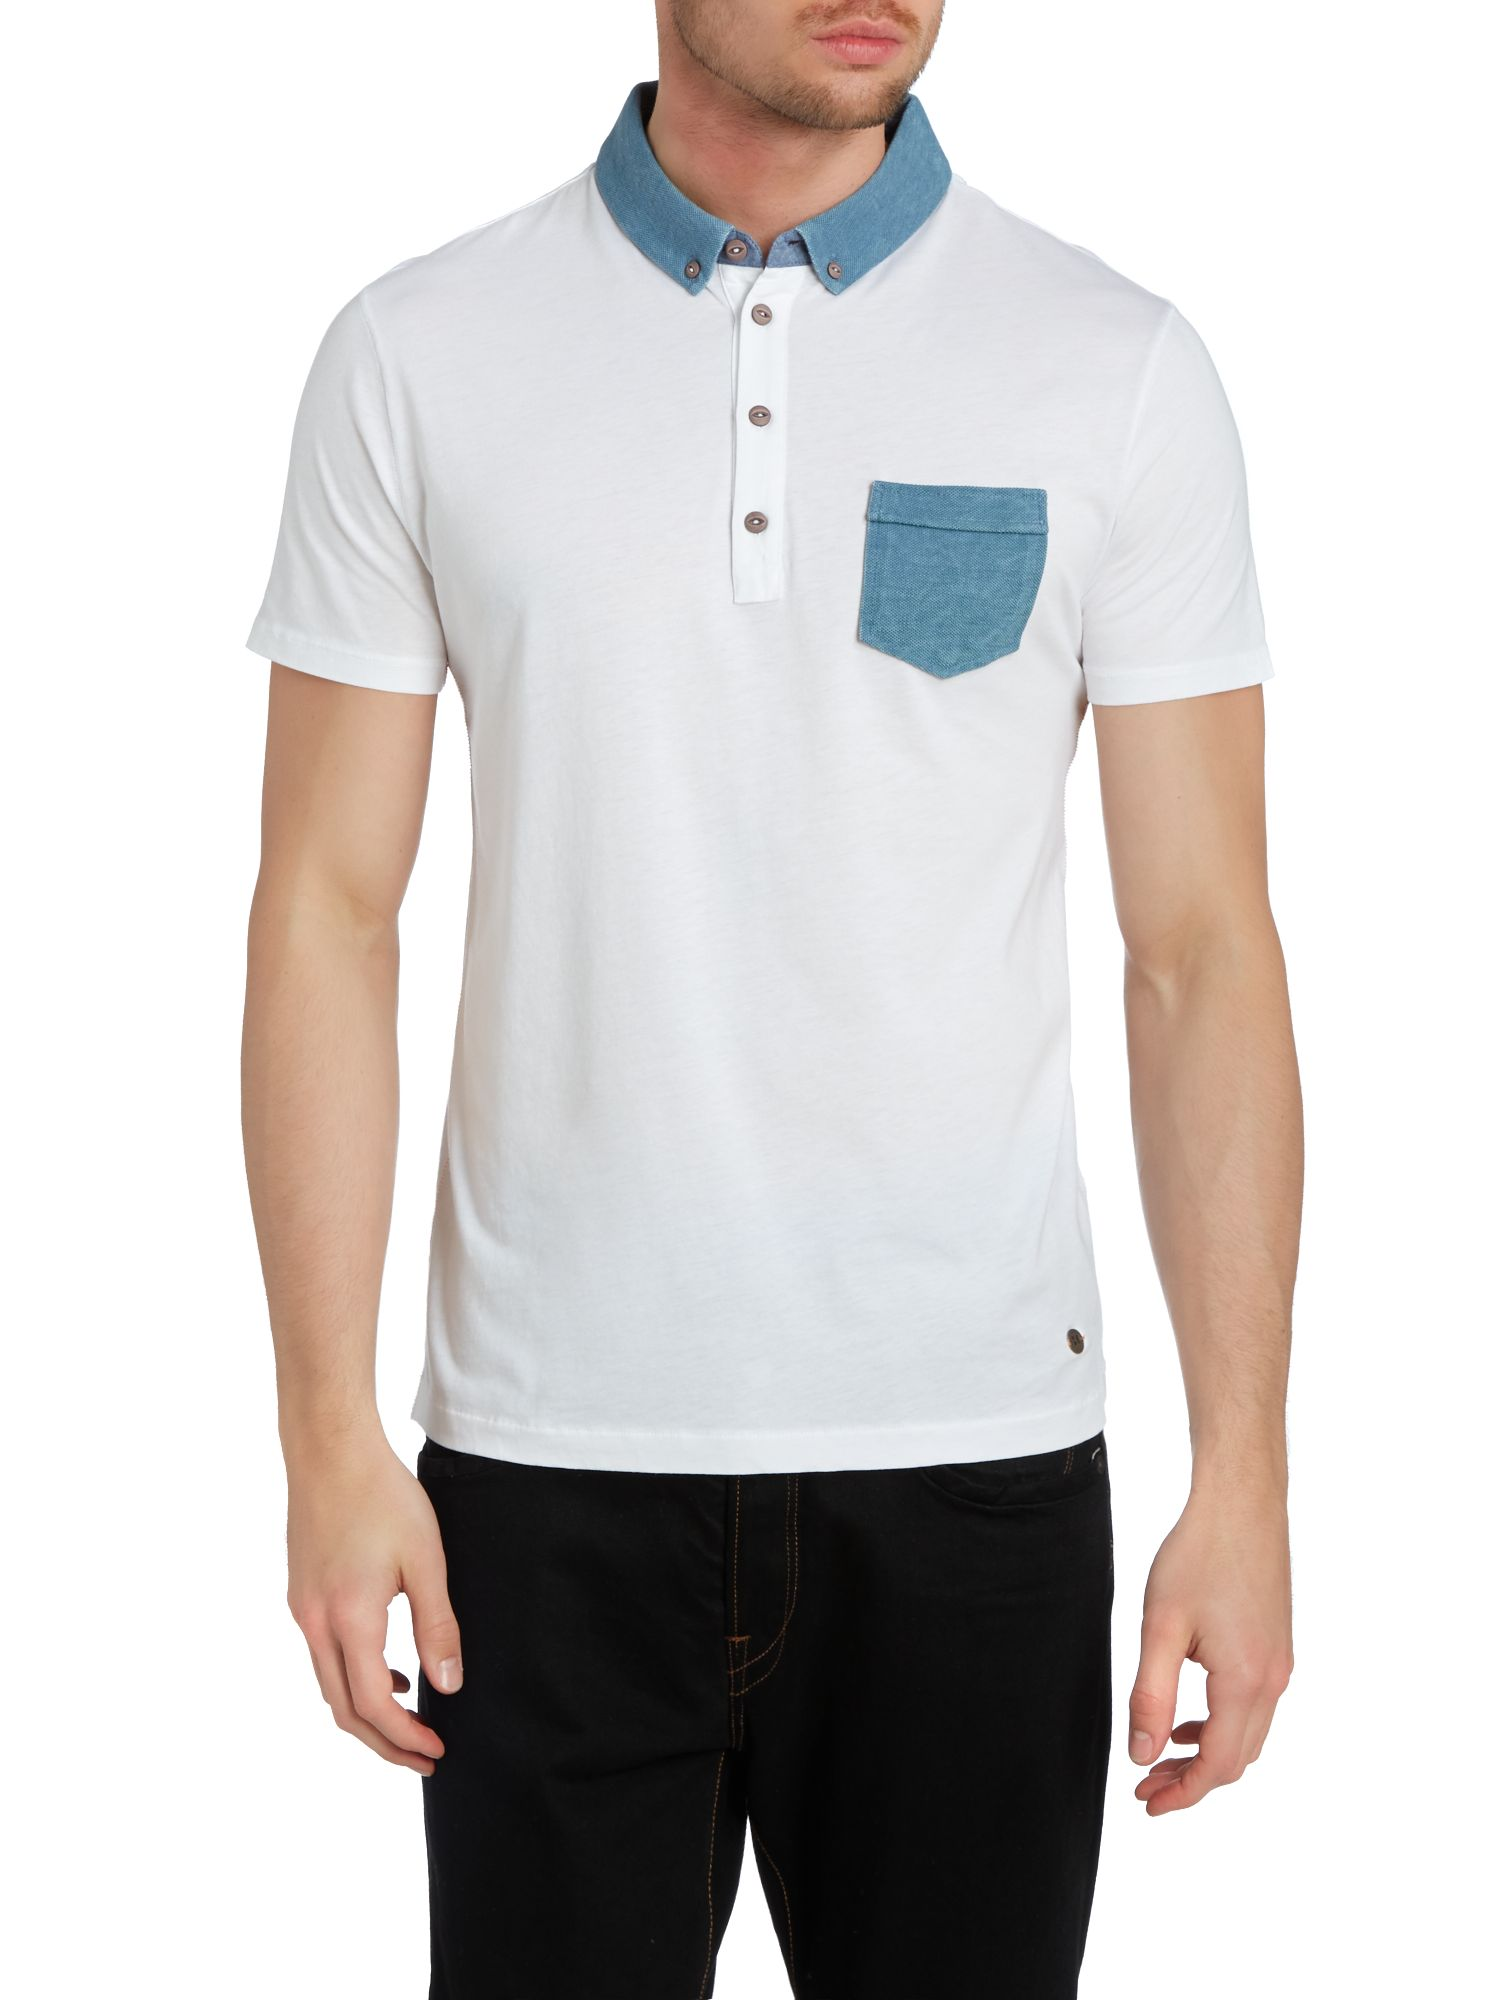 Pique collar polo shirt